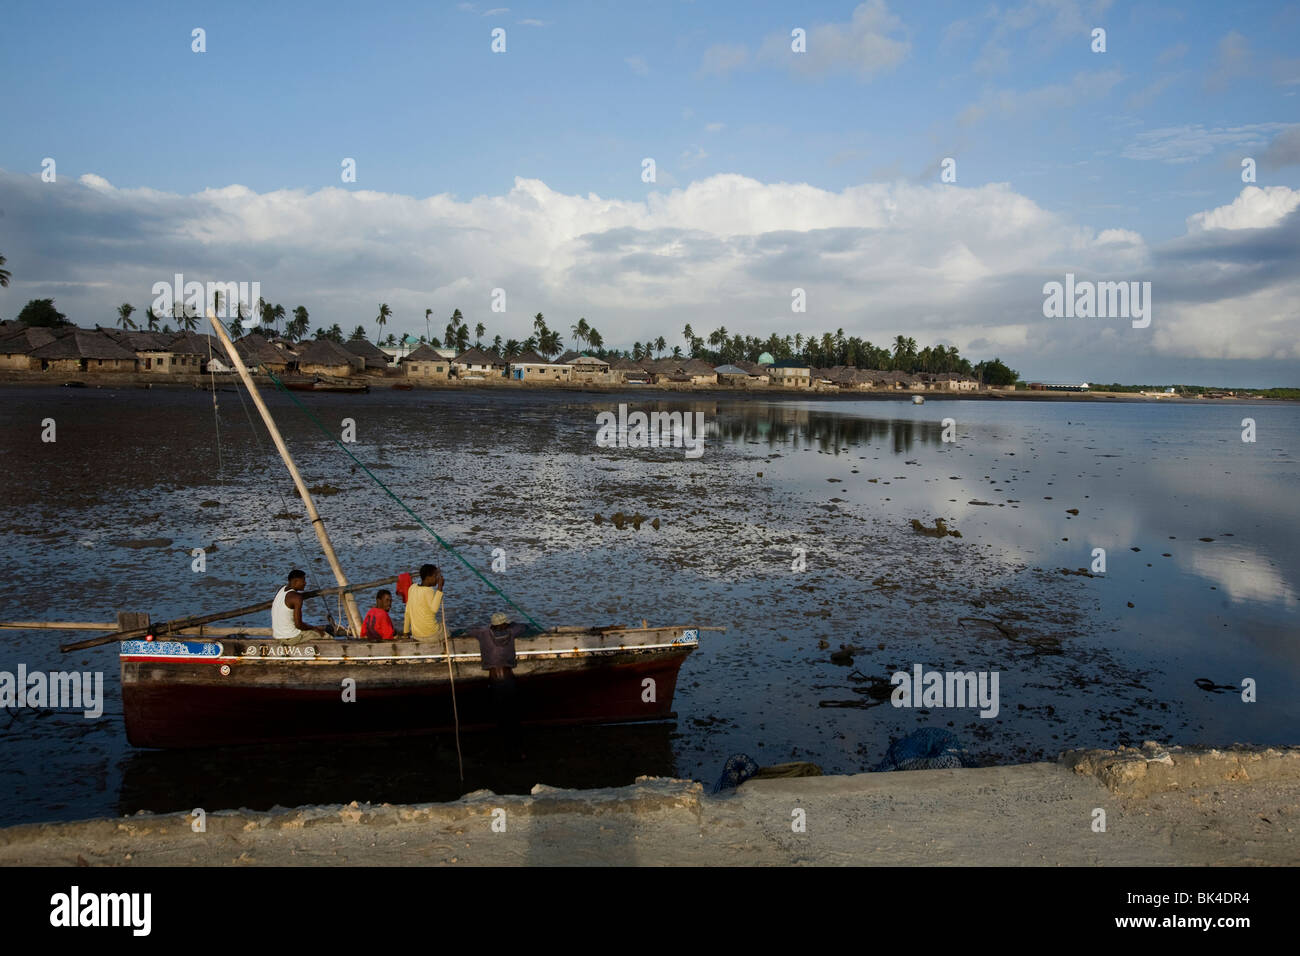 A sailing dhow on a low tide beach in the village of Kizingitini, Pate island on October 1, 2009 in the Lamu archipelago, - Stock Image